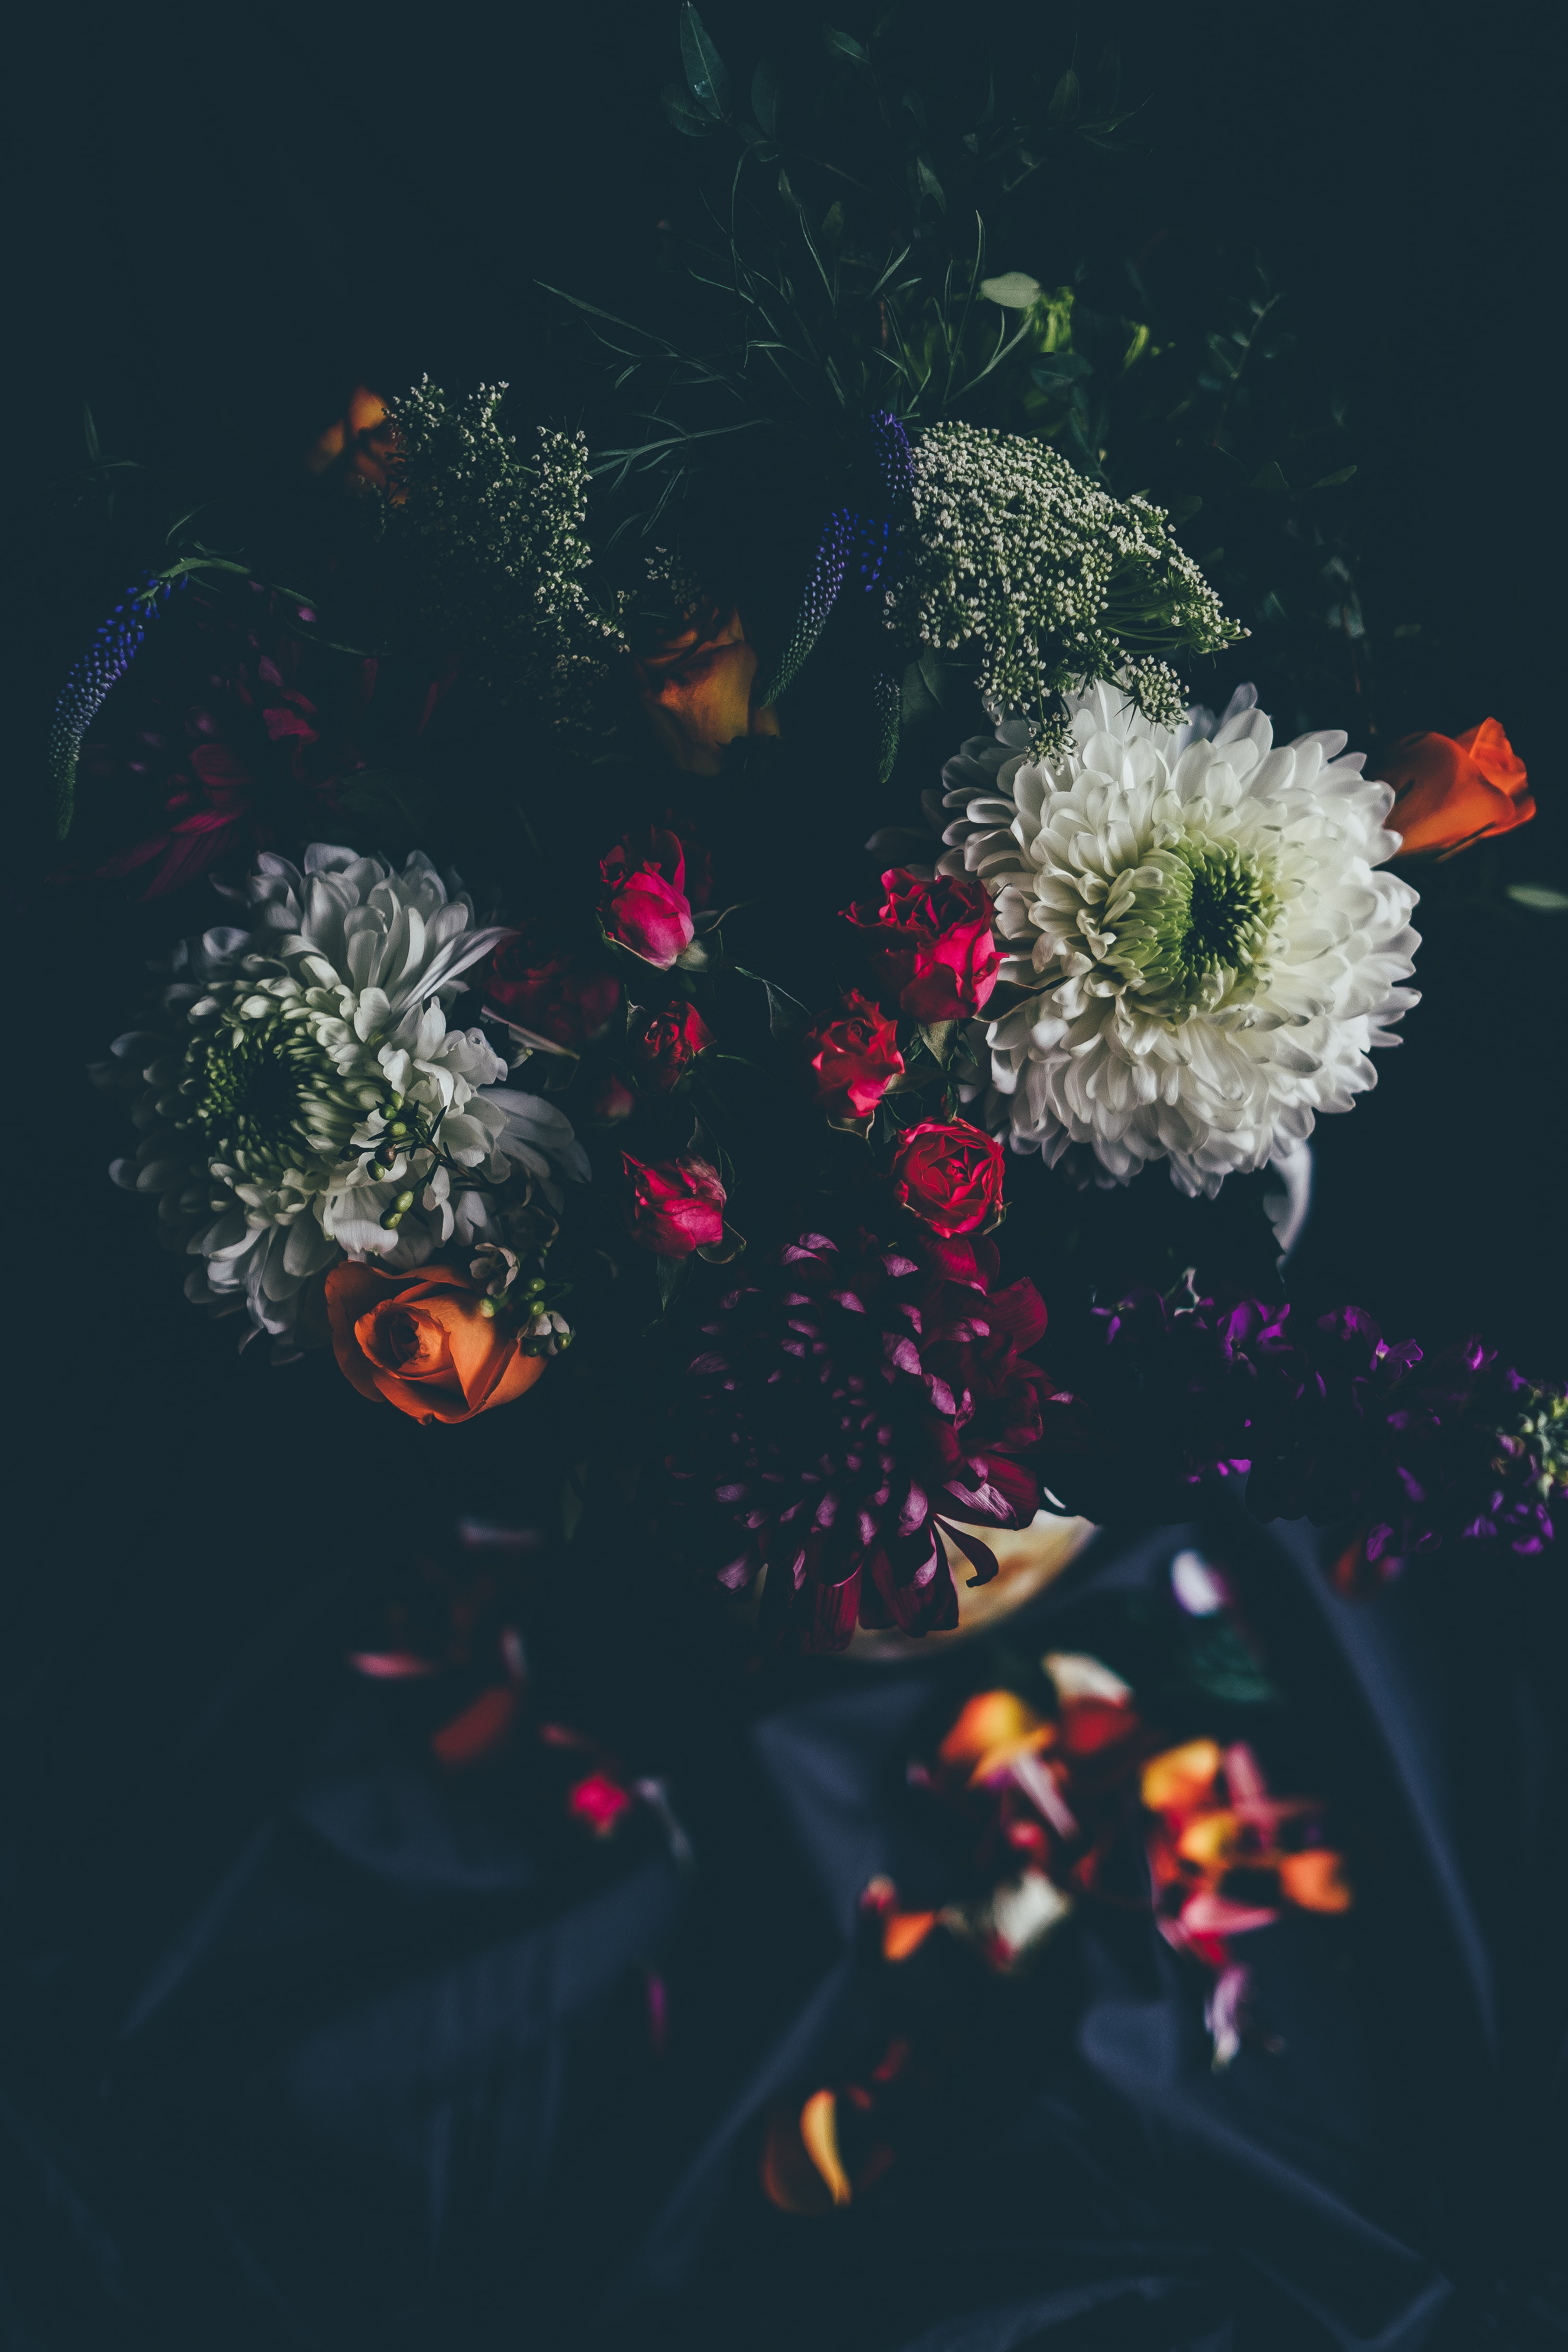 A dim shot of dahlias and roses among other flowers in a colorful bouquet